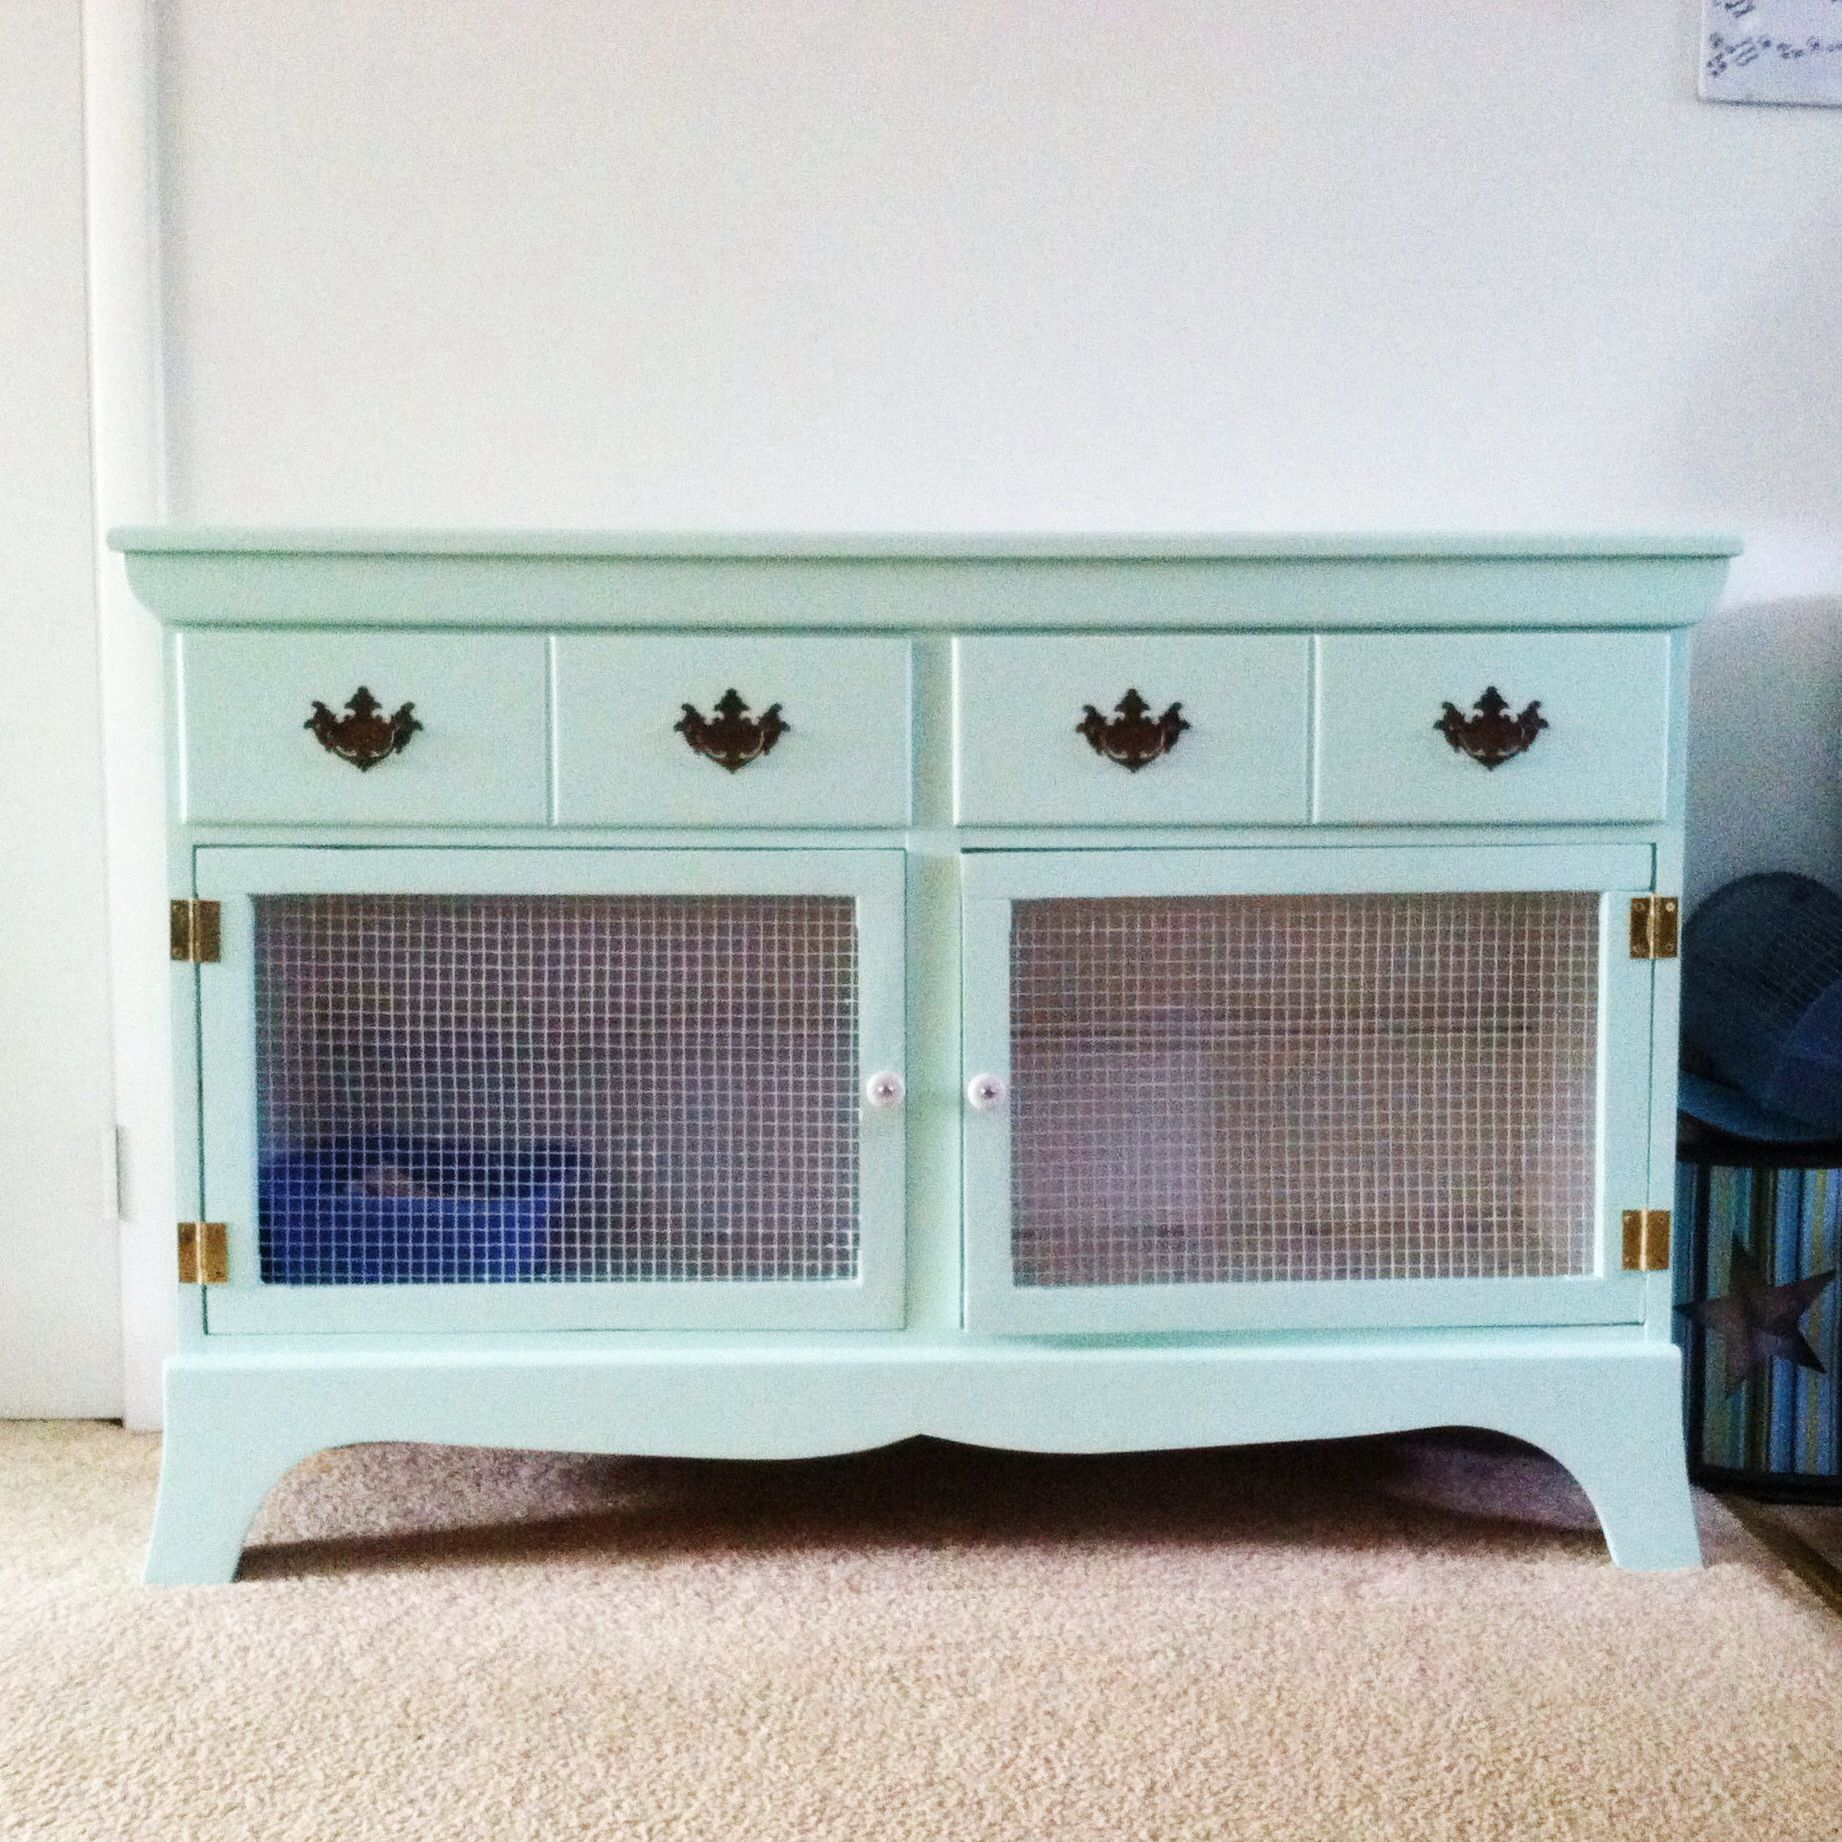 Don't throw out your old cabinets. Upcycle them and your pet will thank you! #PrimroseCreations #LoveTheLifeYouLive #PetFurniture #SustainableLifestyle #Upcycle #Repurpose #Ecofriendly #Wordworking